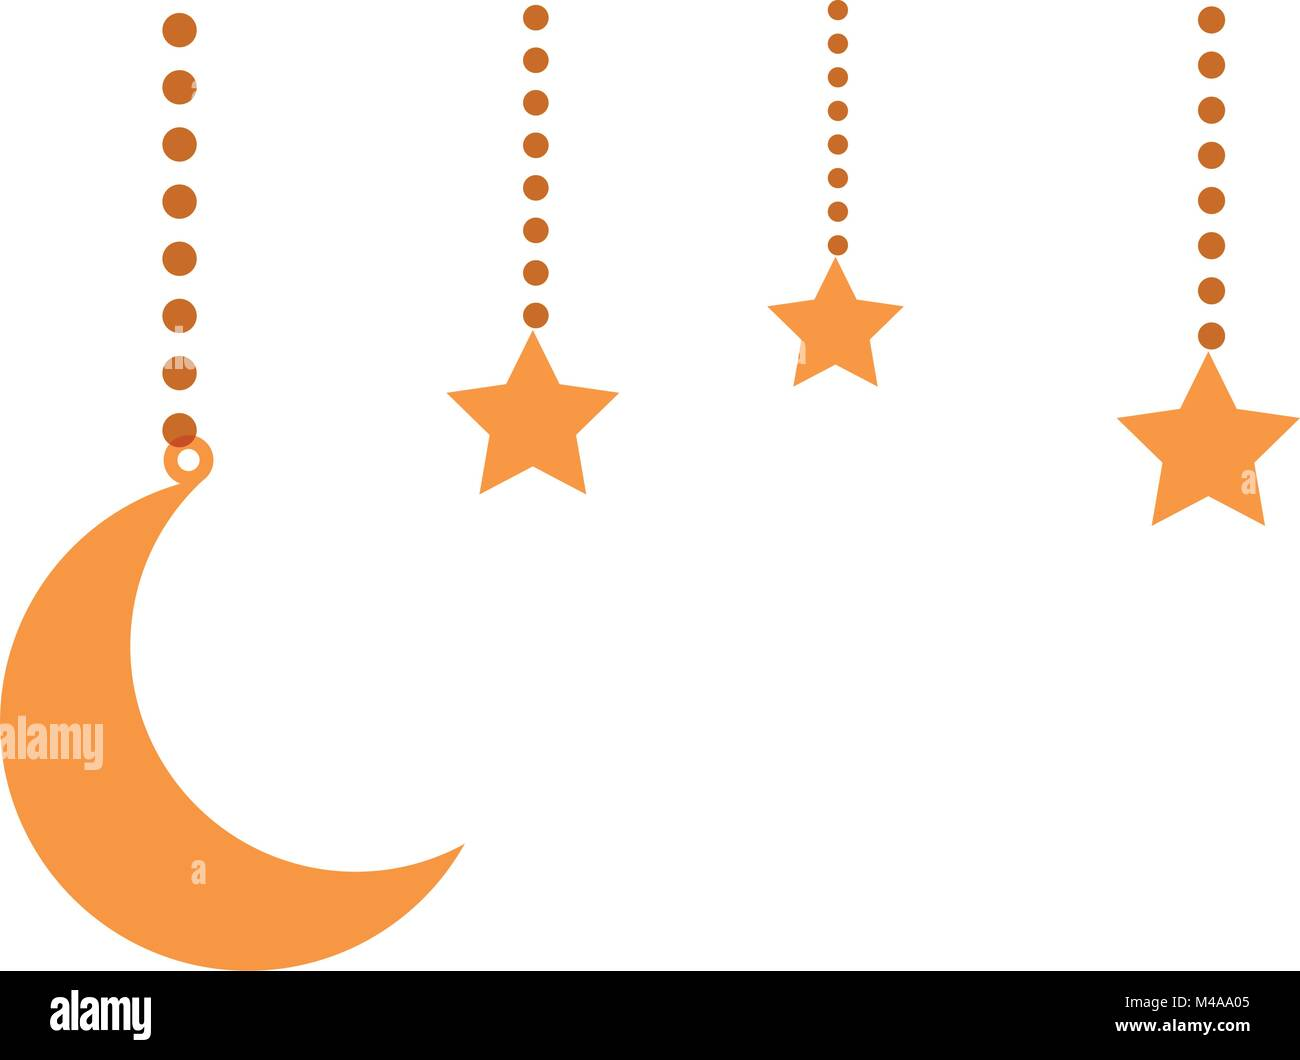 half moon night astrology cut out stock images pictures alamy. Black Bedroom Furniture Sets. Home Design Ideas